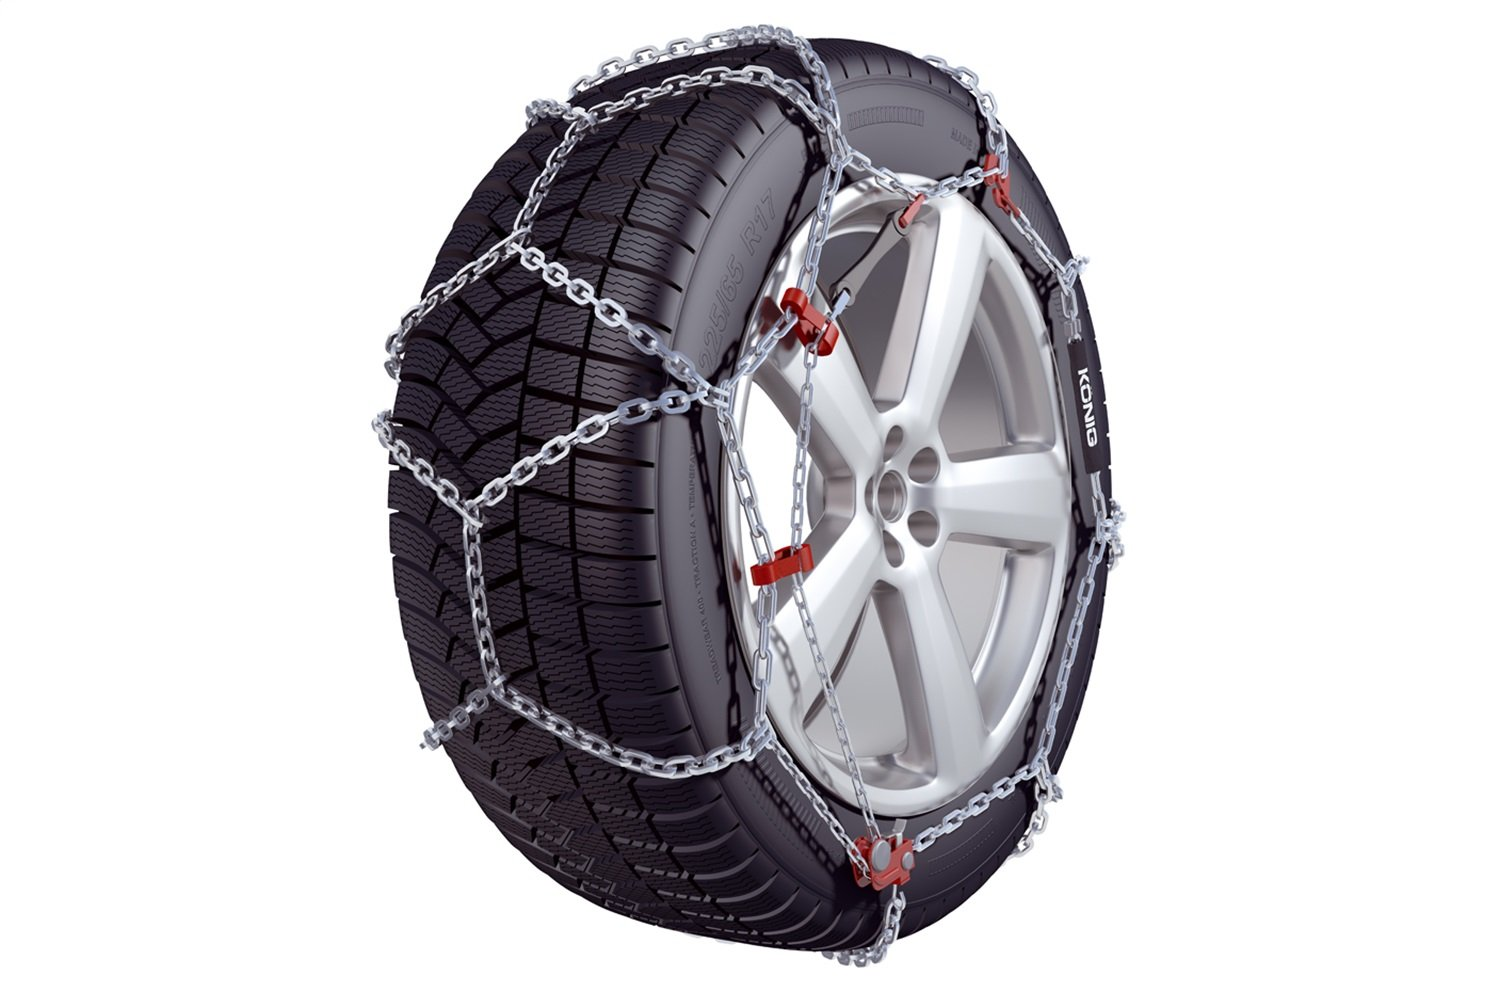 Konig Snow Chains XB-16 265 Review